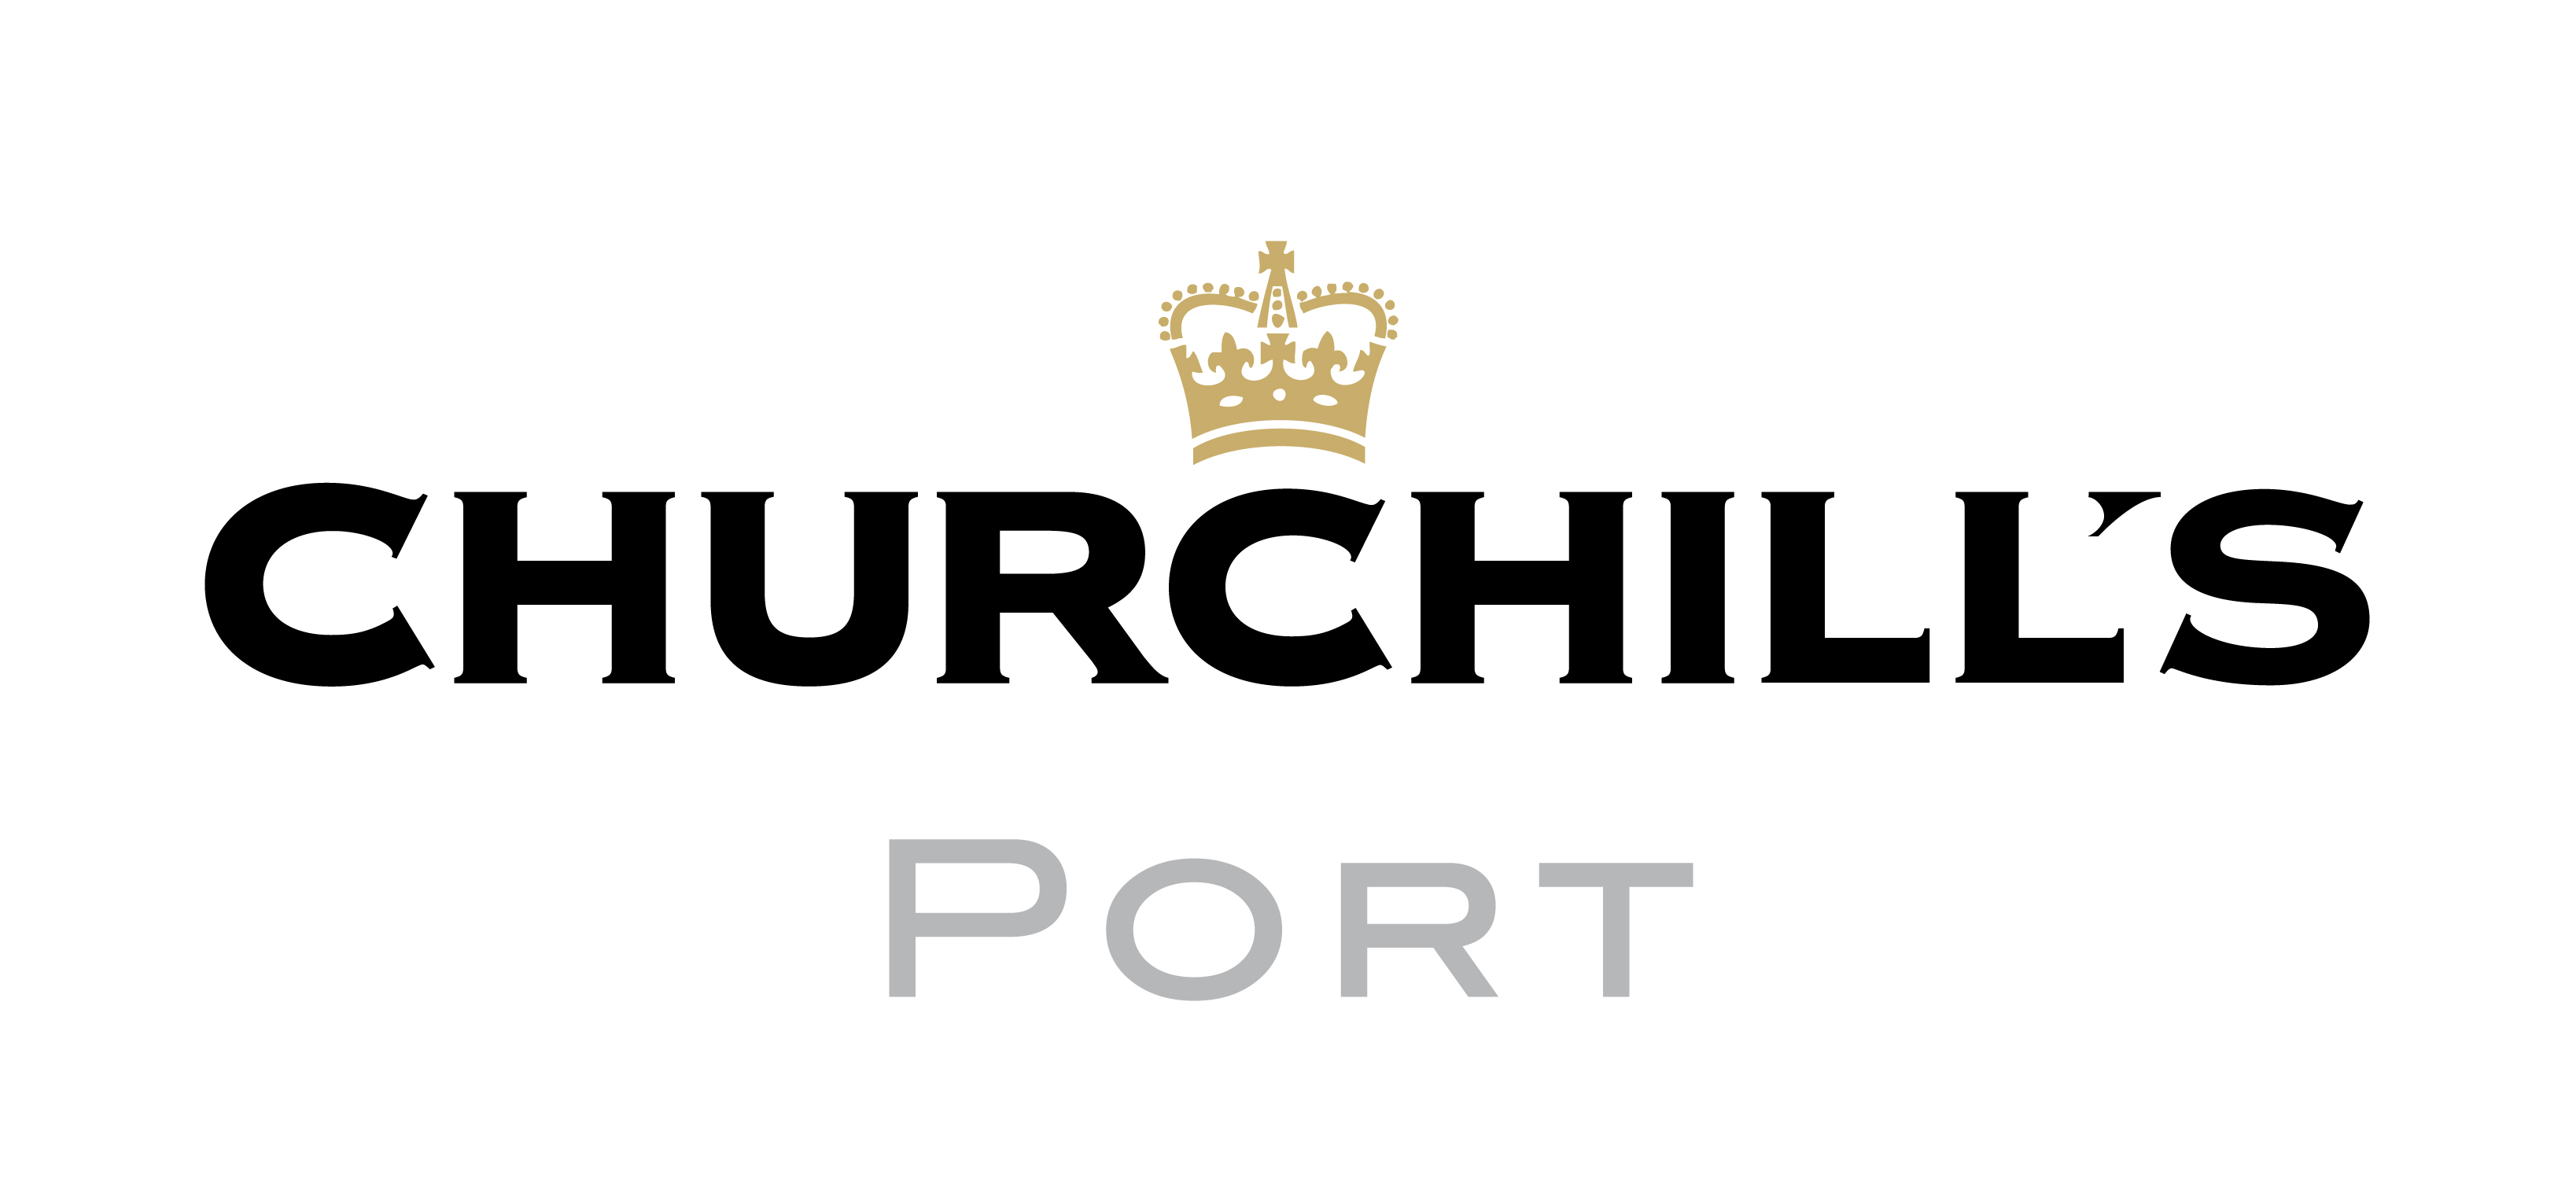 Churchills_Port